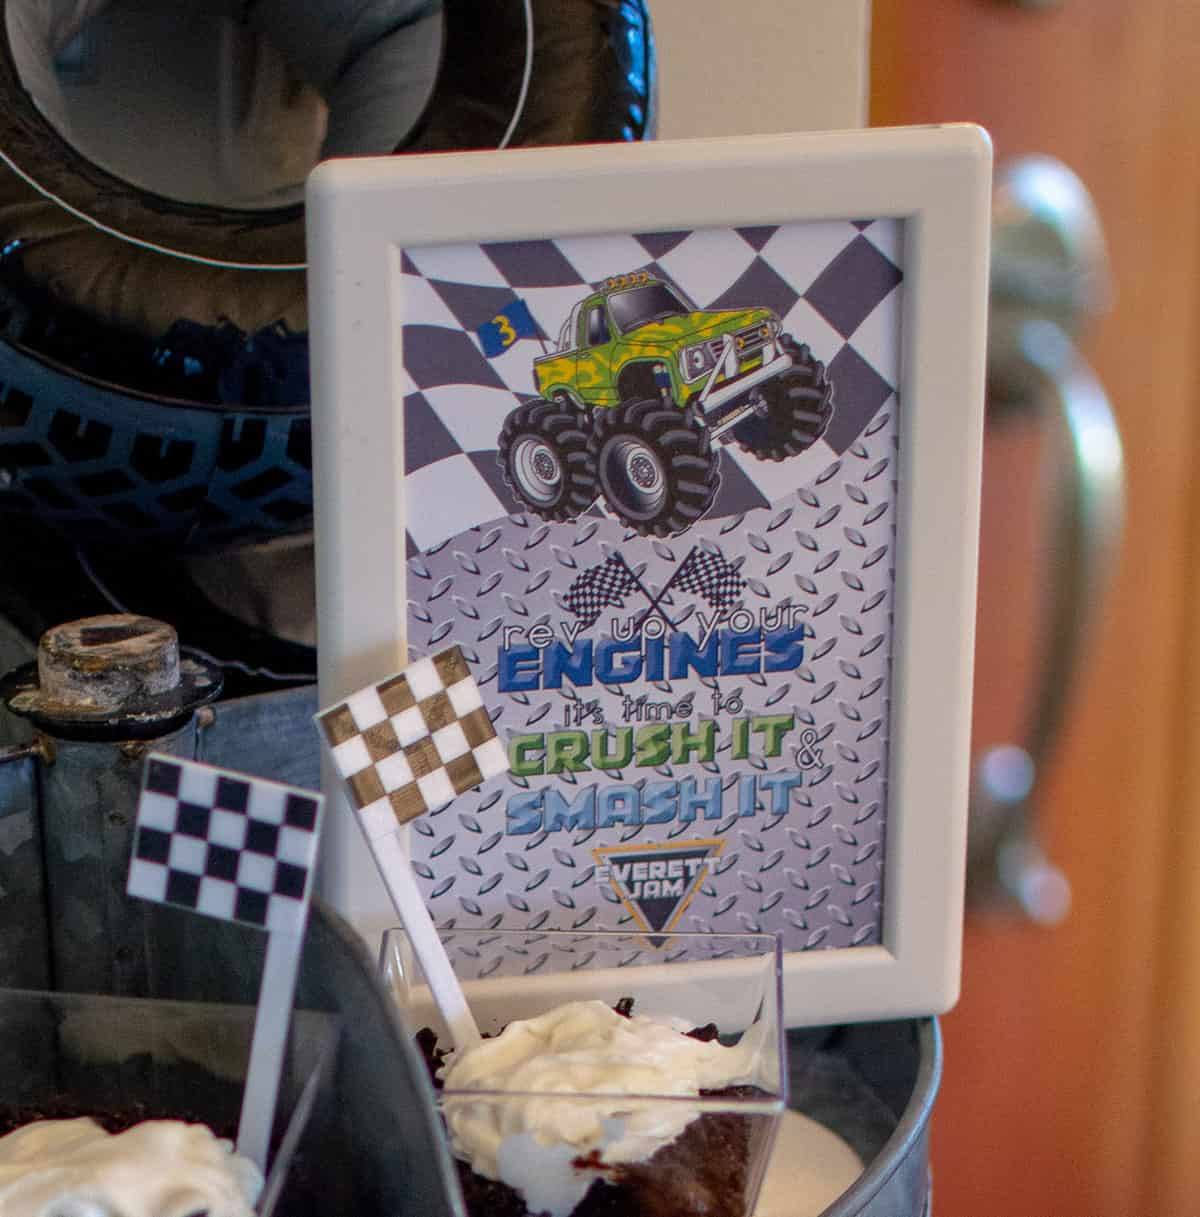 Rev up your engines party sign